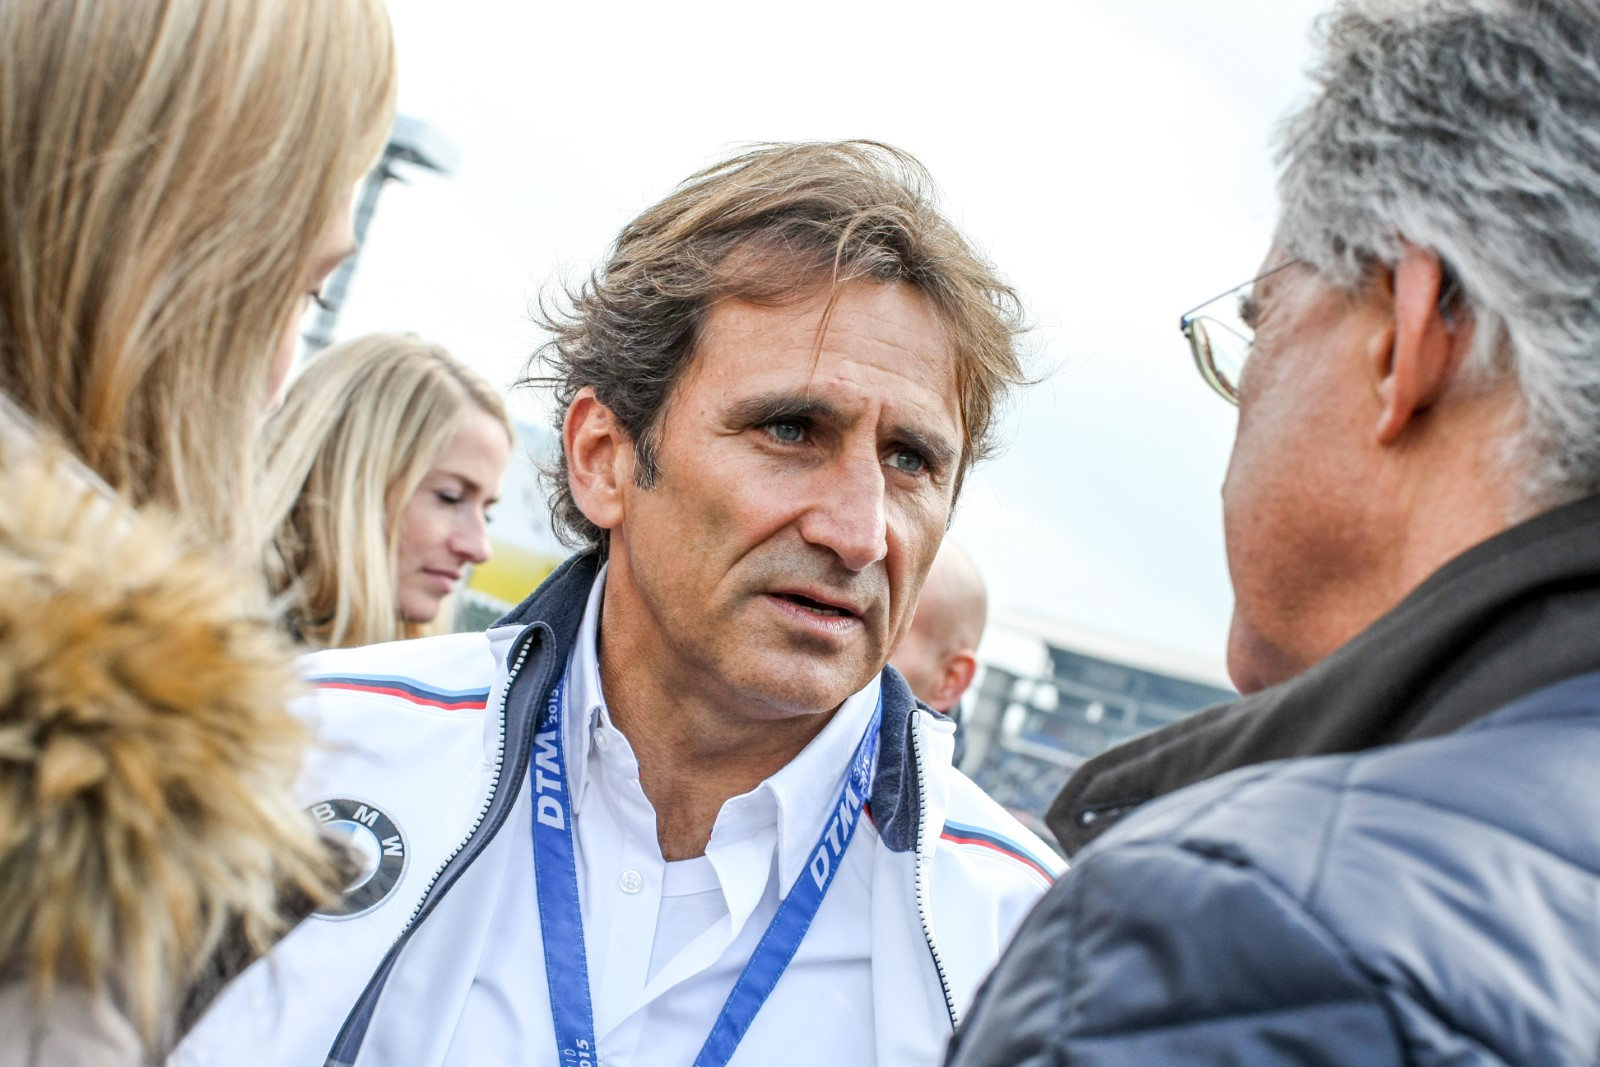 Former F1 ace and paralympic champ Alex Zanardi seriously injured again